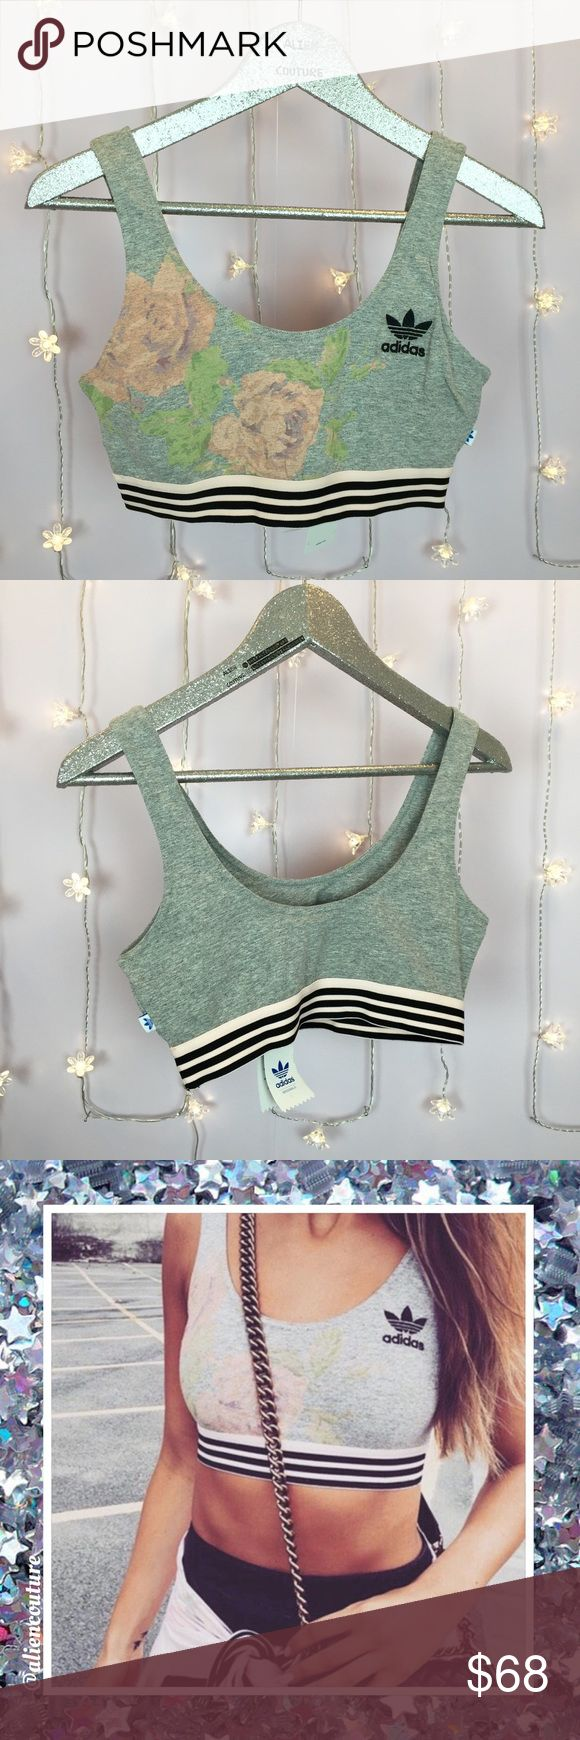 Adidas Pastel Rose Sports Bra Brand new with tags Adidas pastel rose floral bra. Super soft and comfy. Pull on style. Embroidered trefoil logo. Sold out hard to find style, especially in this size NWT. I currently have a size L and a size S available. As seen on Kylie Jenner (check out my Adidas lookbook listing for photos)! NO TRADES. I also have the matching leggings listed! ✨Also listed in an outfit bundle, prices for separates are FRIM and higher, as I'd prefer to sell as a set.✨ Adidas…